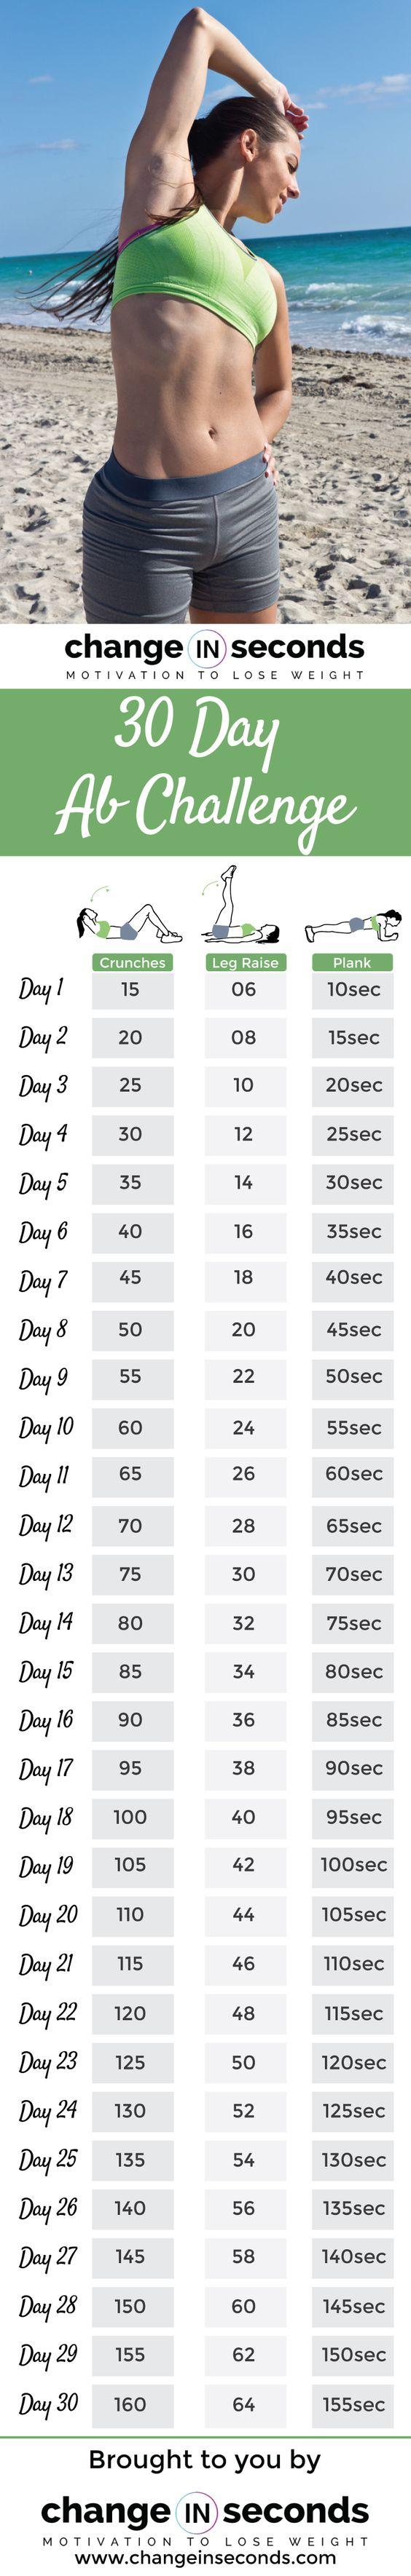 30 day ab challenge download pdf 30 day abs 30 day ab challenge and ab challenge. Black Bedroom Furniture Sets. Home Design Ideas